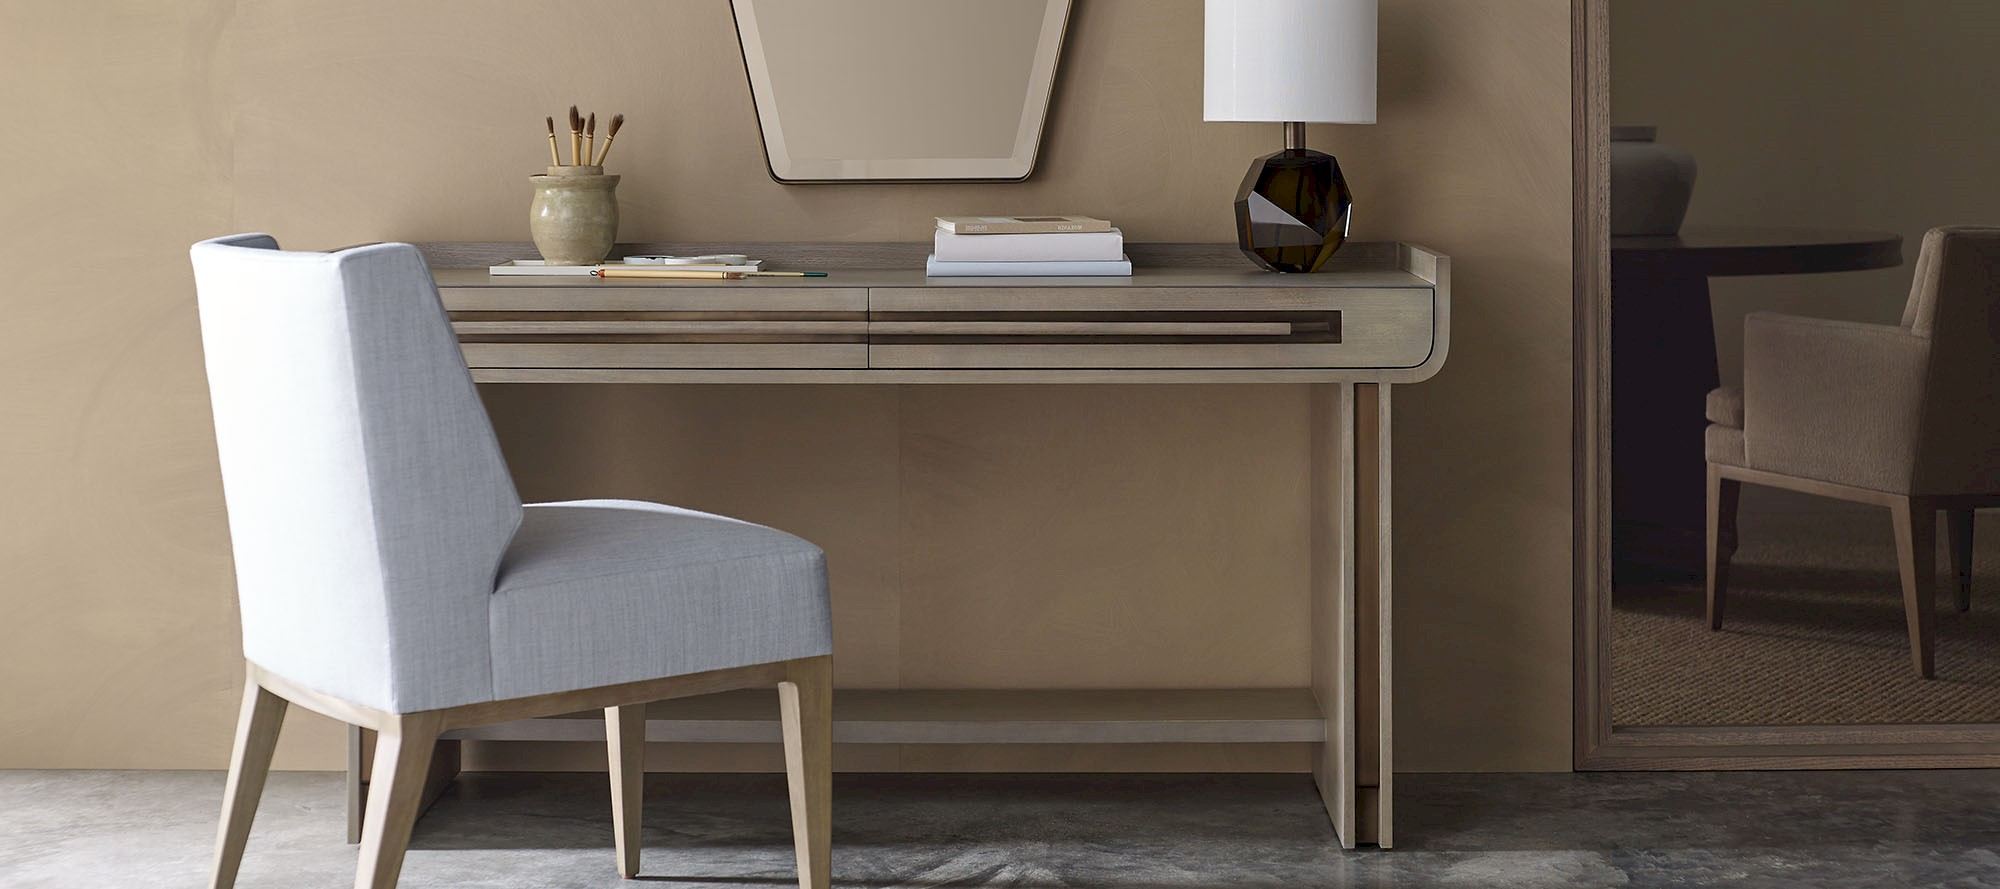 Стол письменный DISTINCT DESK, дизайн Baker, дизайнер Barbara Barry